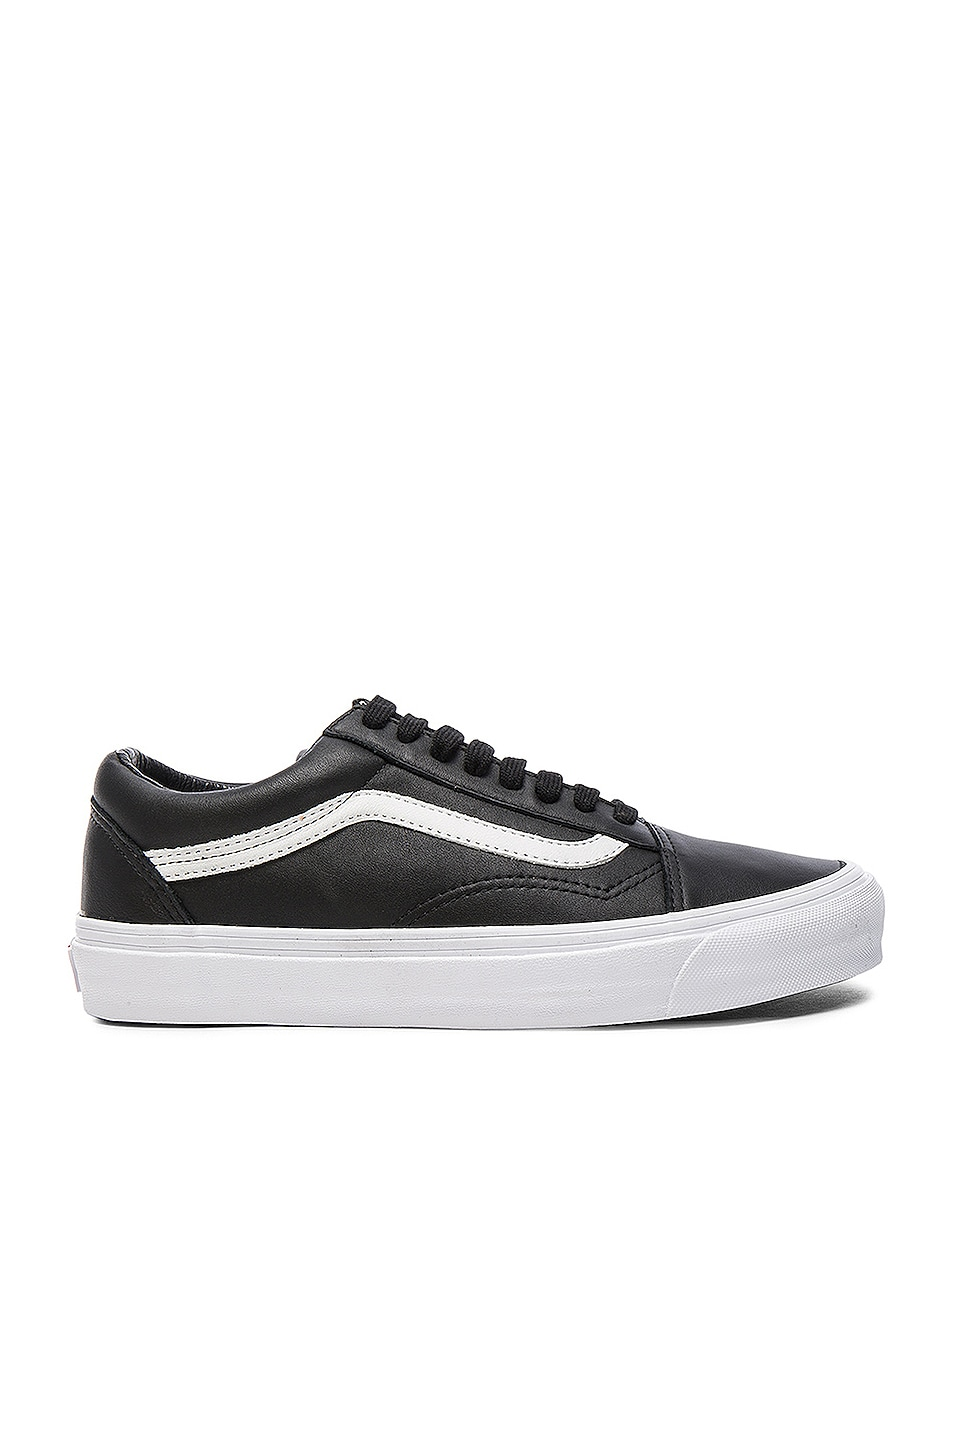 Image 1 of Vans Vault OG Leather Old Skool LX in Black